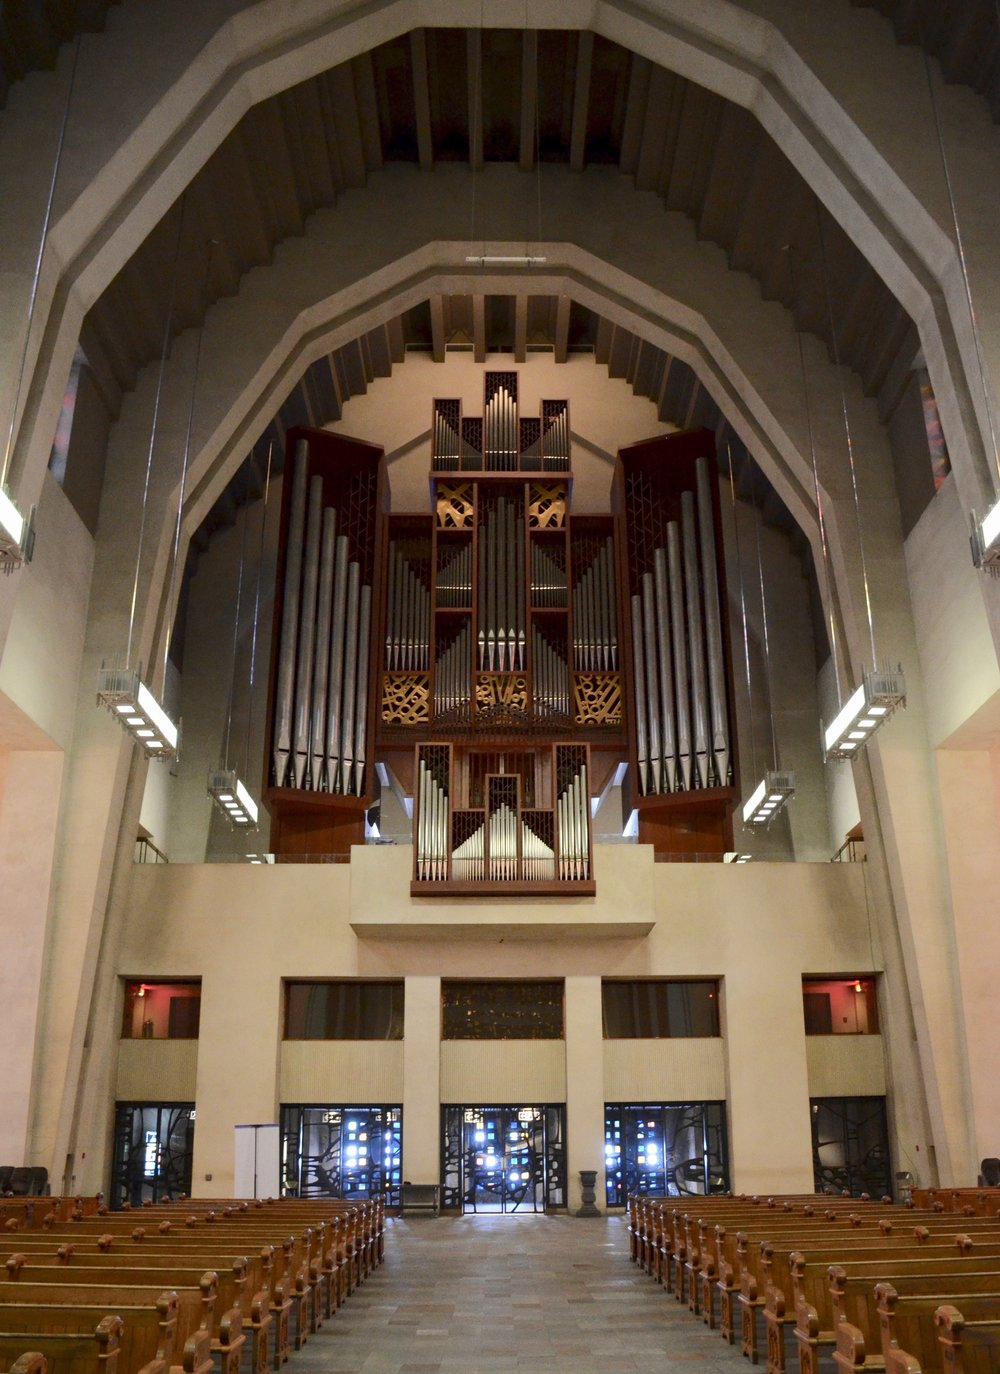 The Beckerath organ, St. Joseph Oratory, Montreal